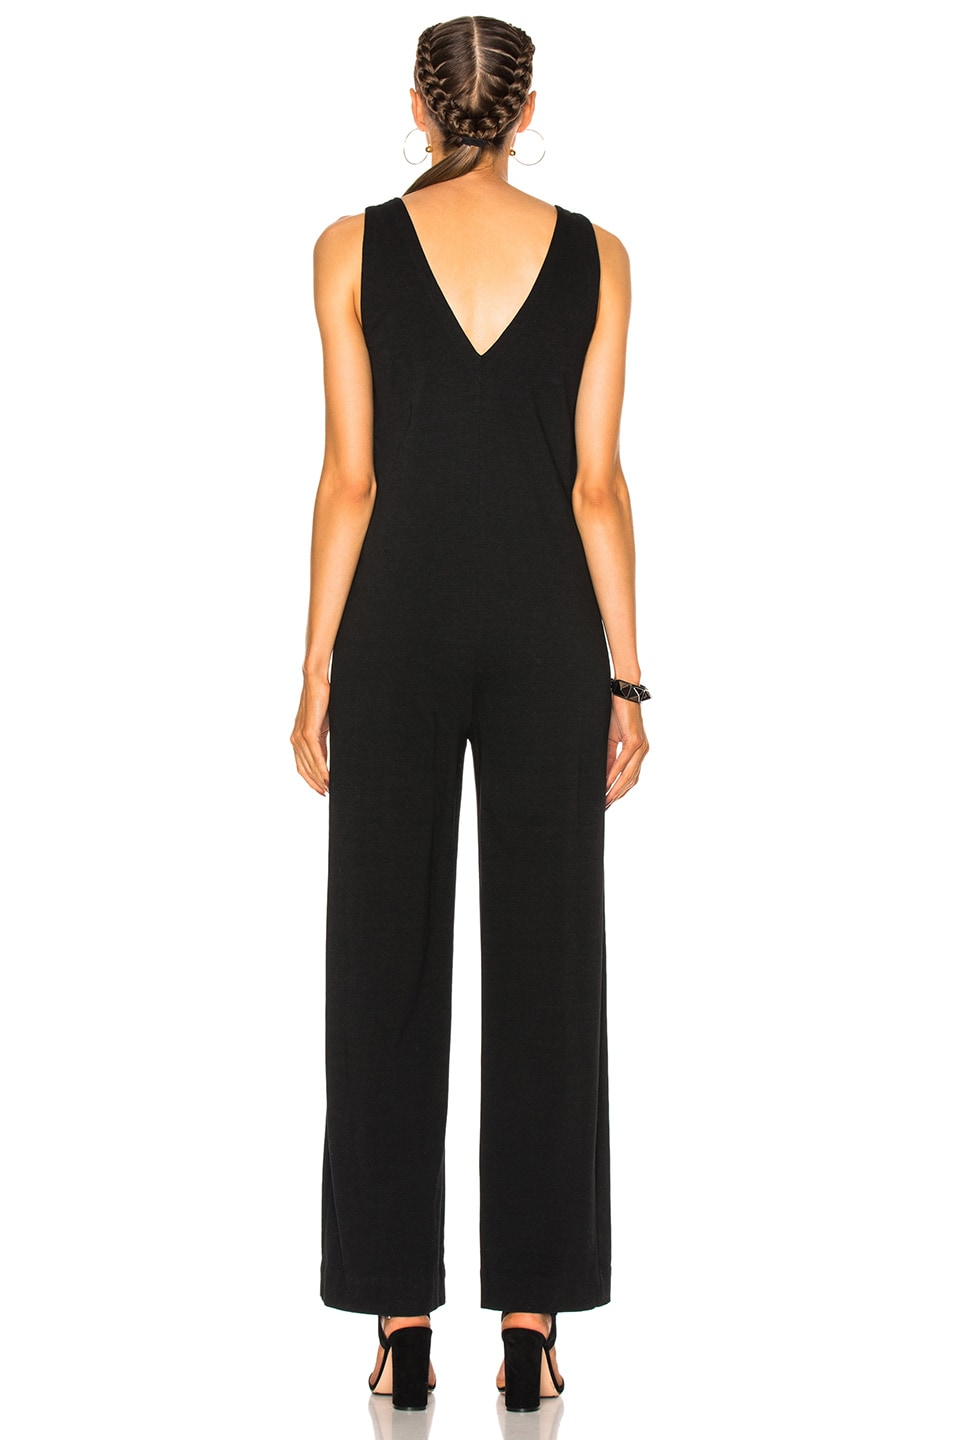 b65648edcb Image 4 of James Perse Palazzo Jumpsuit in Black